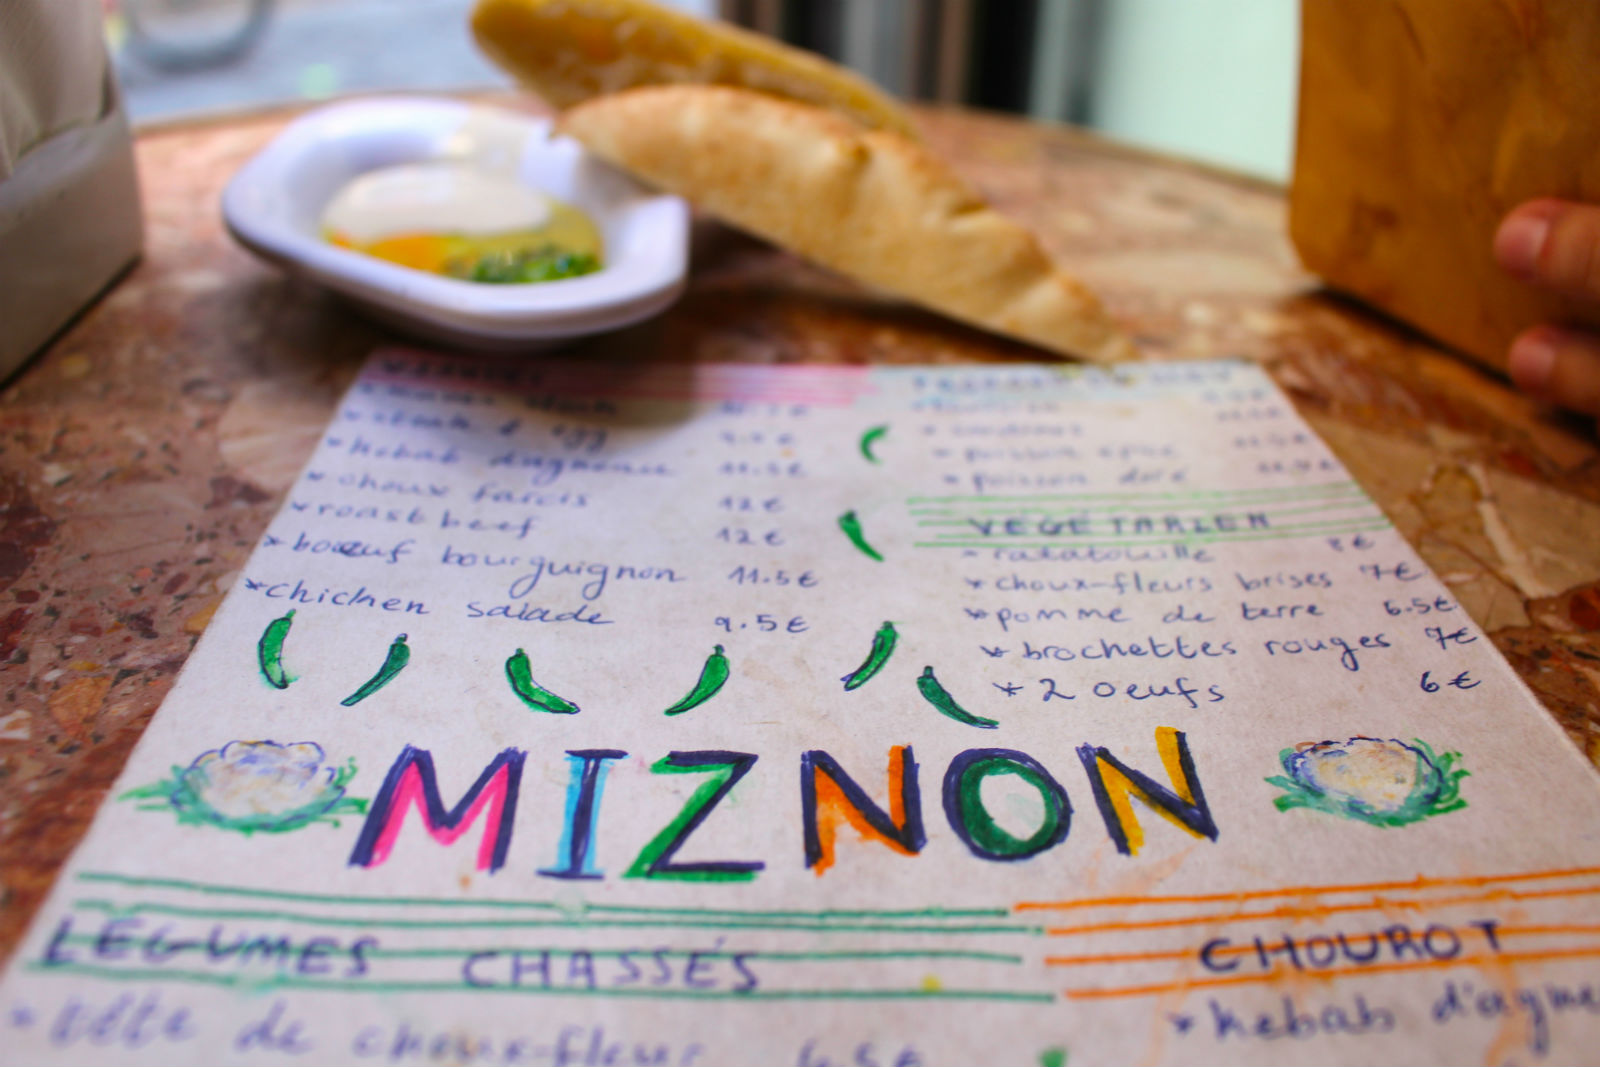 HiP Paris blog. Miznon. Delicious fare at reasonable prices.